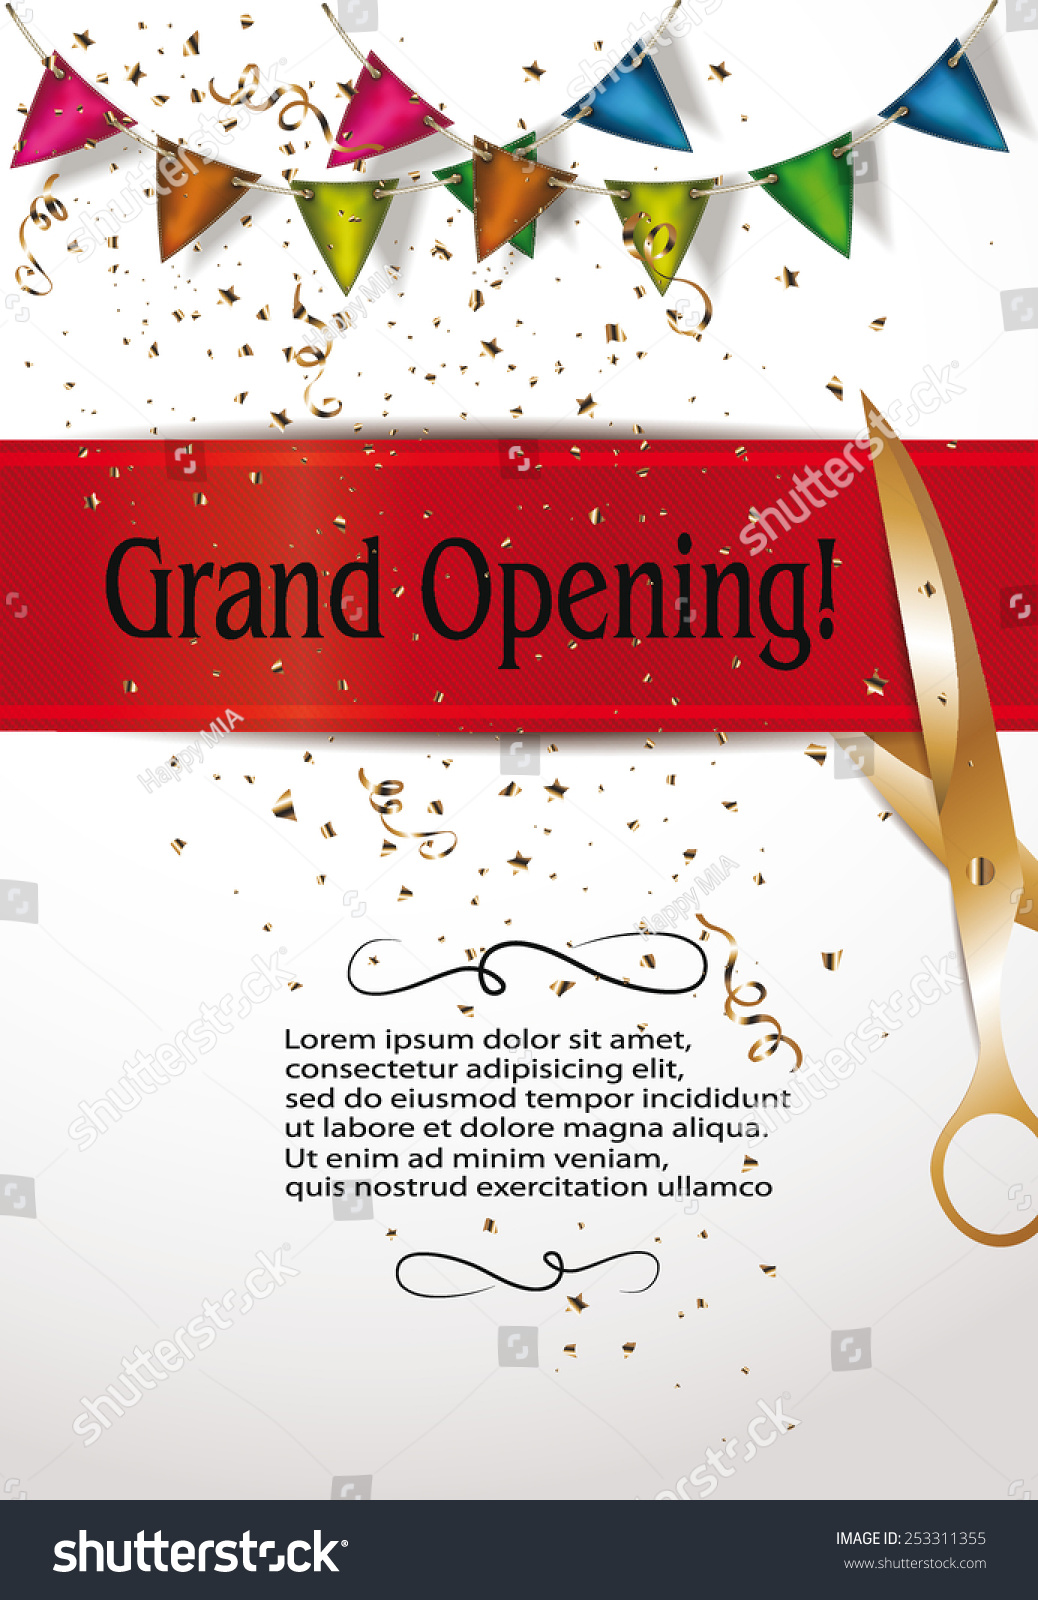 Grand Opening Invitation Cards Decorations Red Vector – Grand Opening Invitation Cards